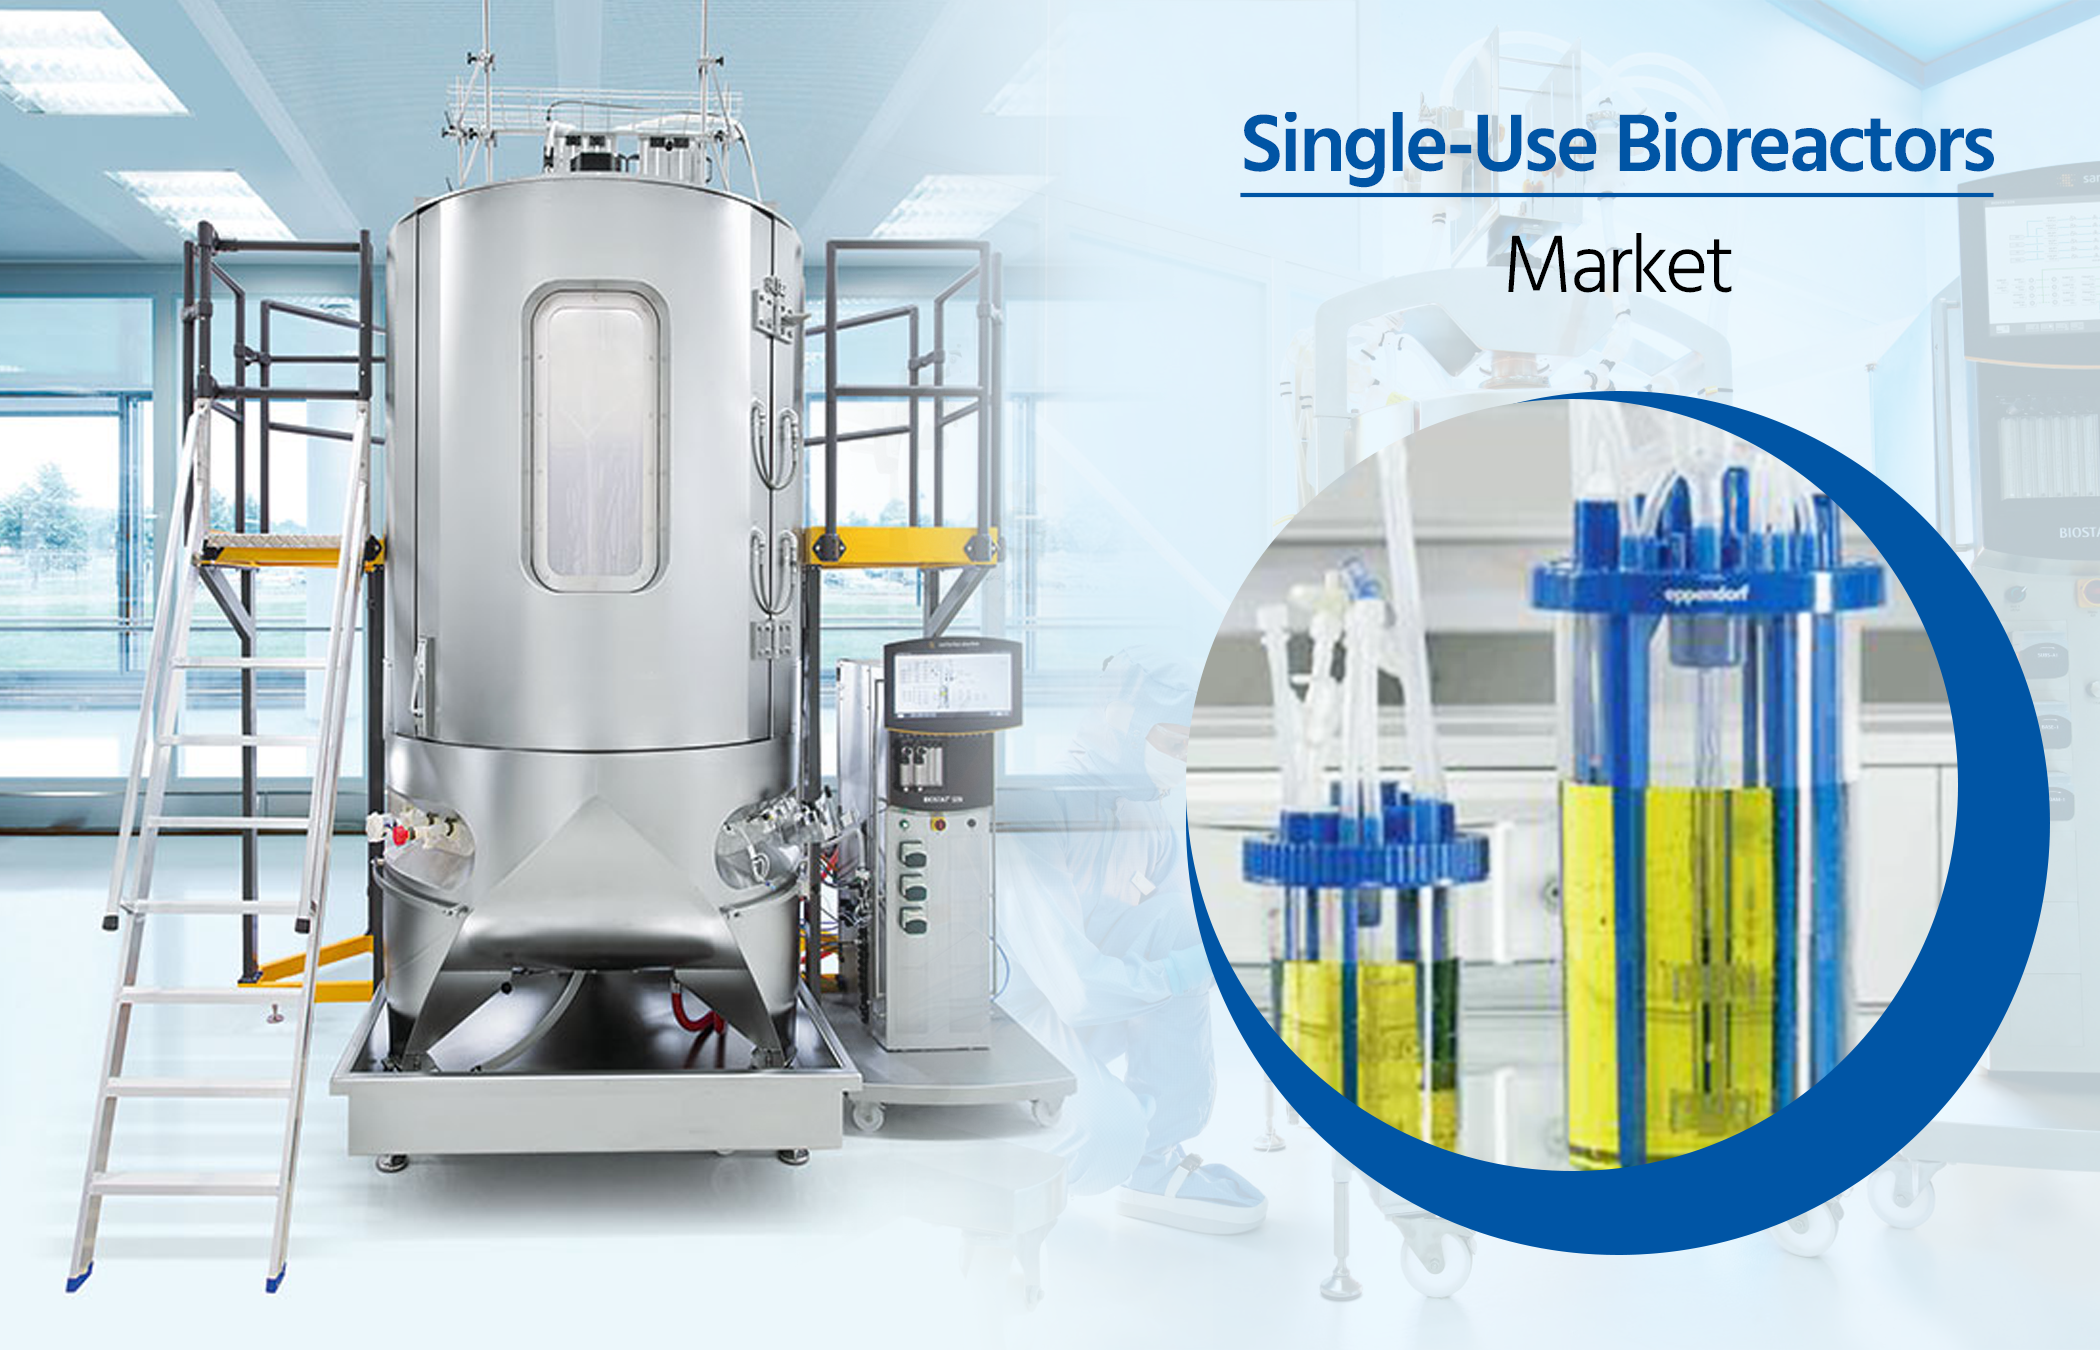 Single-use Bioreactors Market Growth by Top players 2019-2030 | Pierre Guérin, Cellexus Ltd, Sartorius AG, Merck KGaA, Celltainer